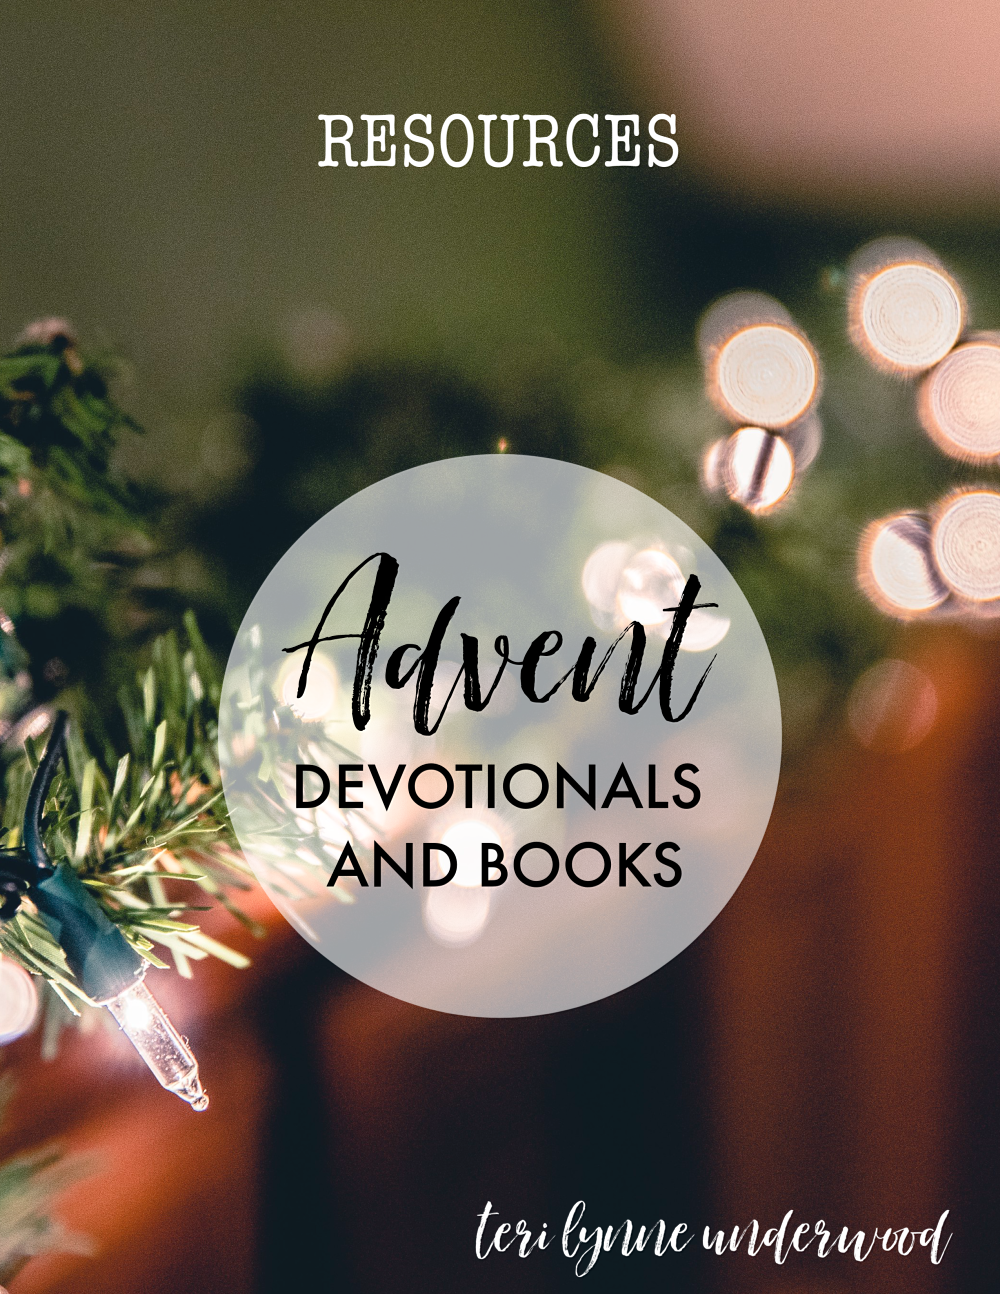 Advent is an invitation to more than checking days off until Christmas. It's an invitation to take stock of our souls, to prepare our hearts for celebrating the One who has come and will one day come again. These are some resources that can help us do that well.